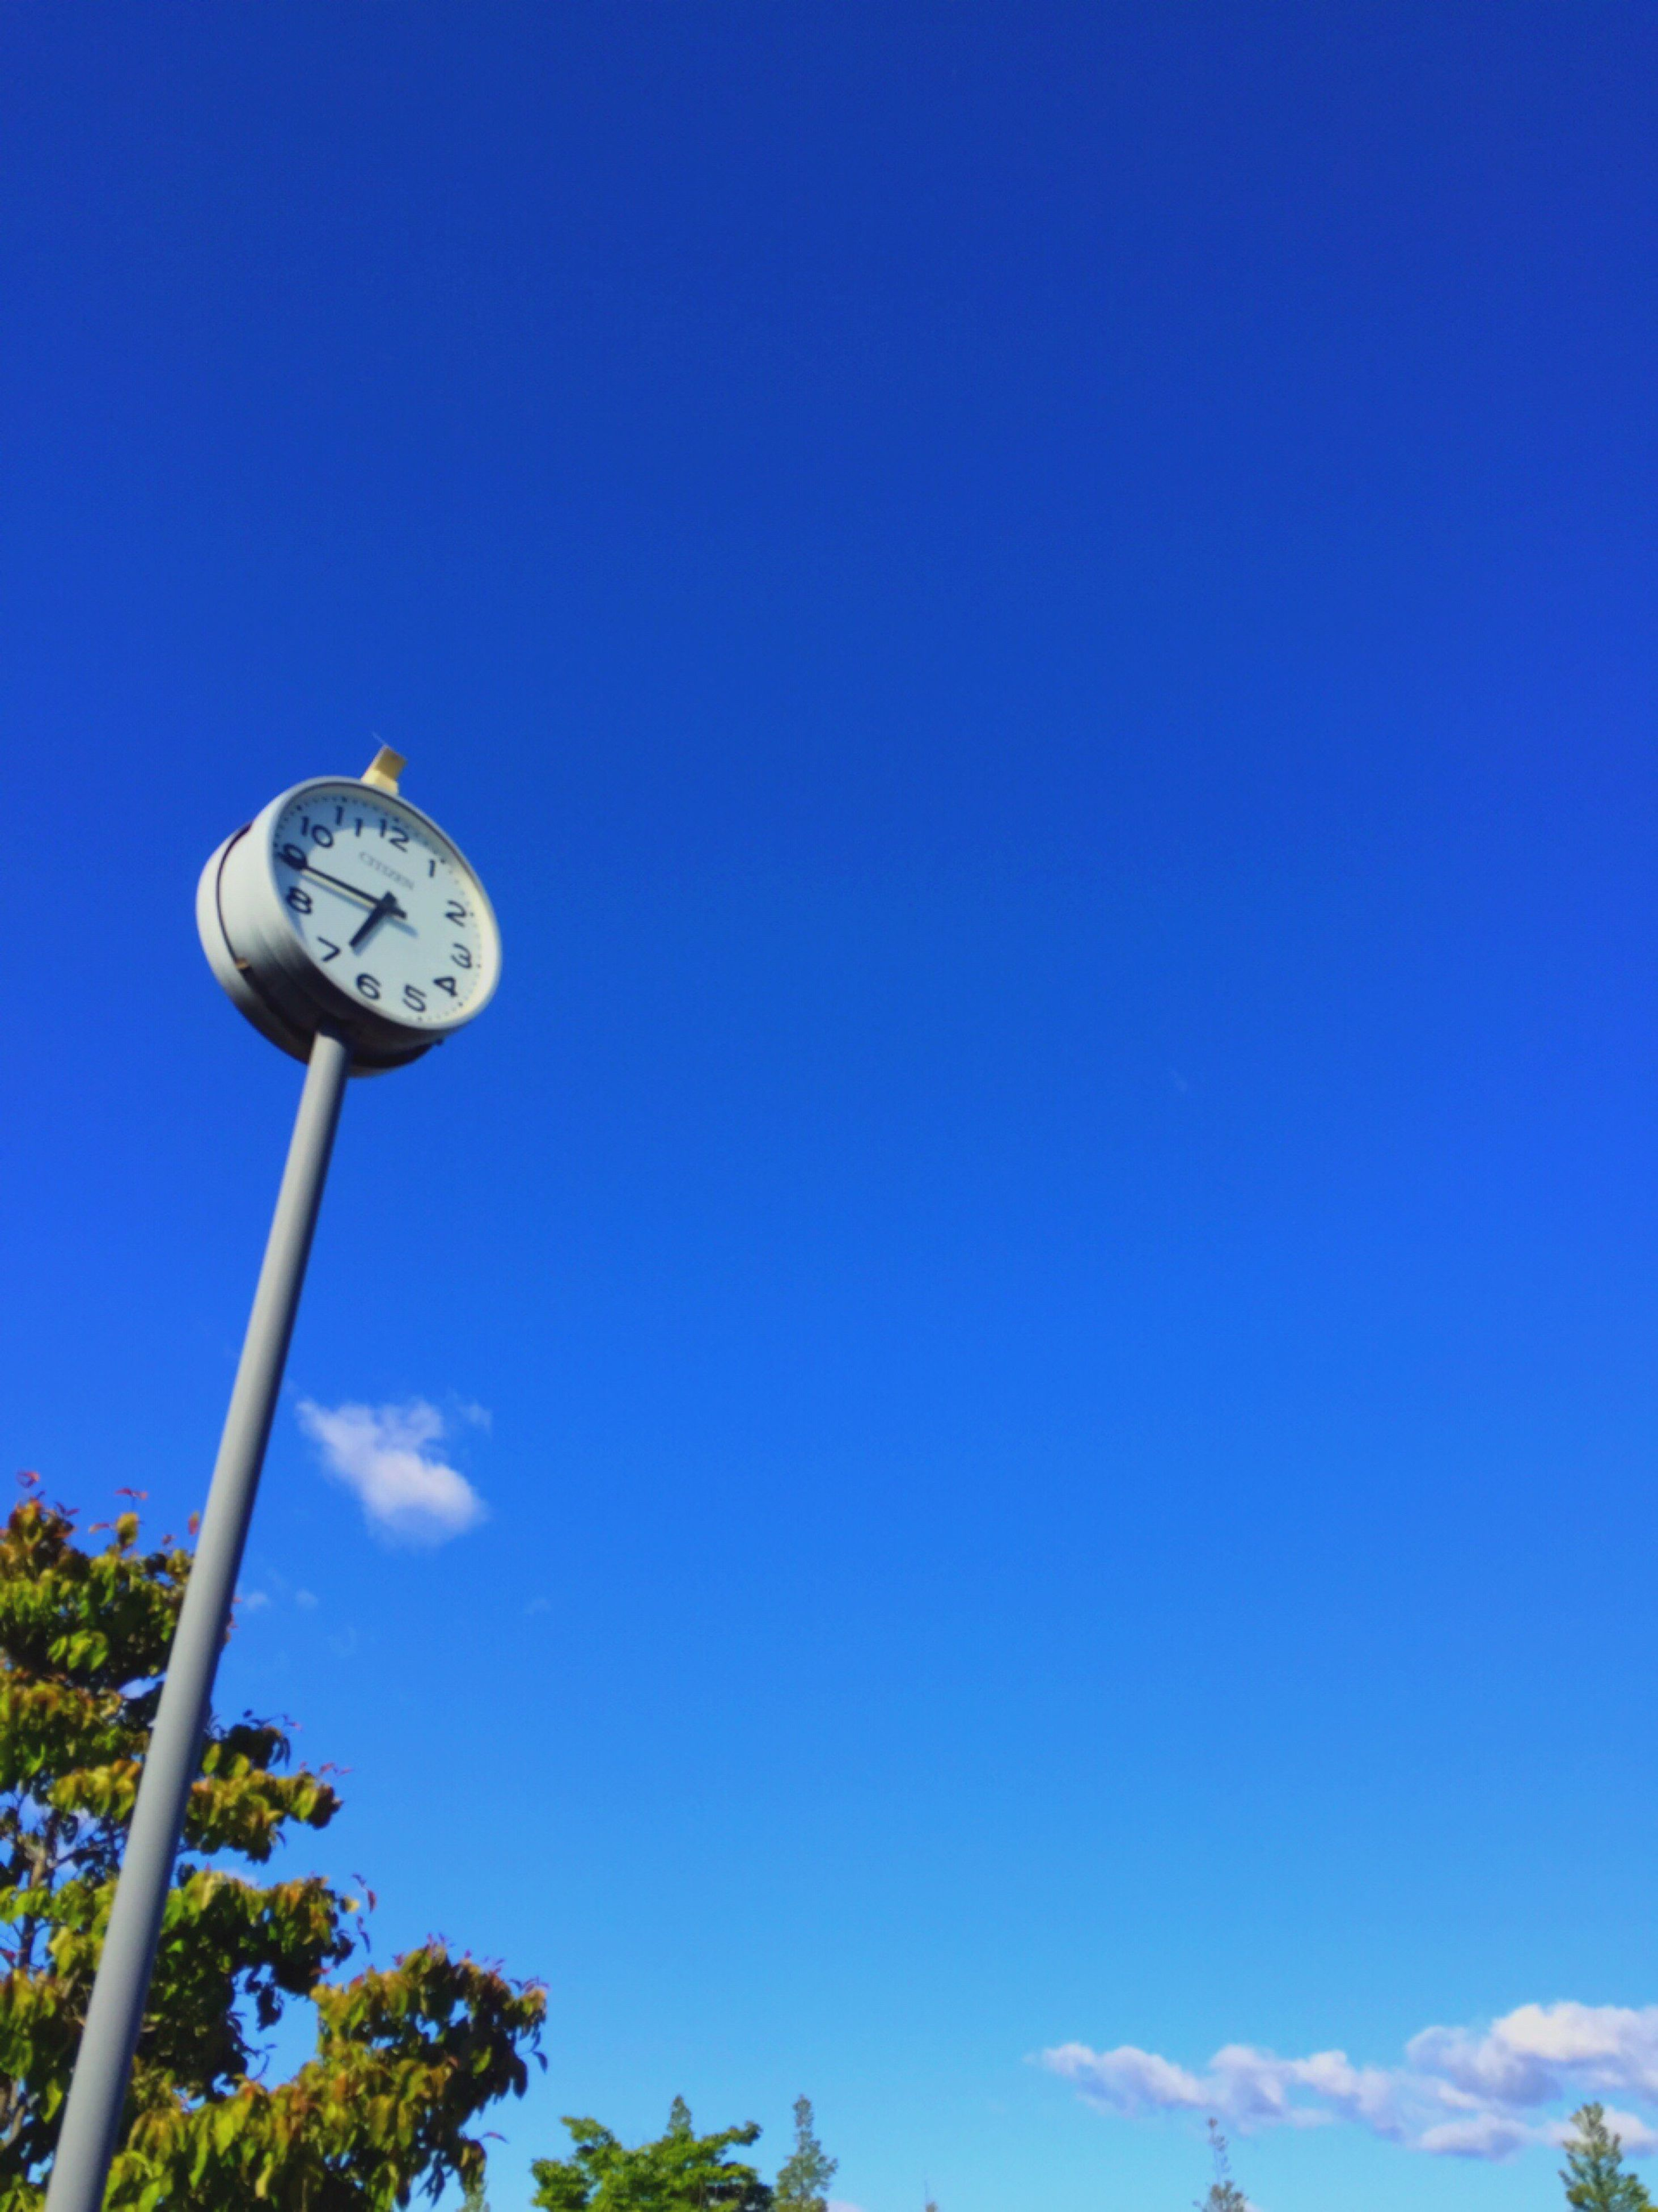 blue, low angle view, copy space, clear sky, day, no people, outdoors, sky, clock, time, nature, tree